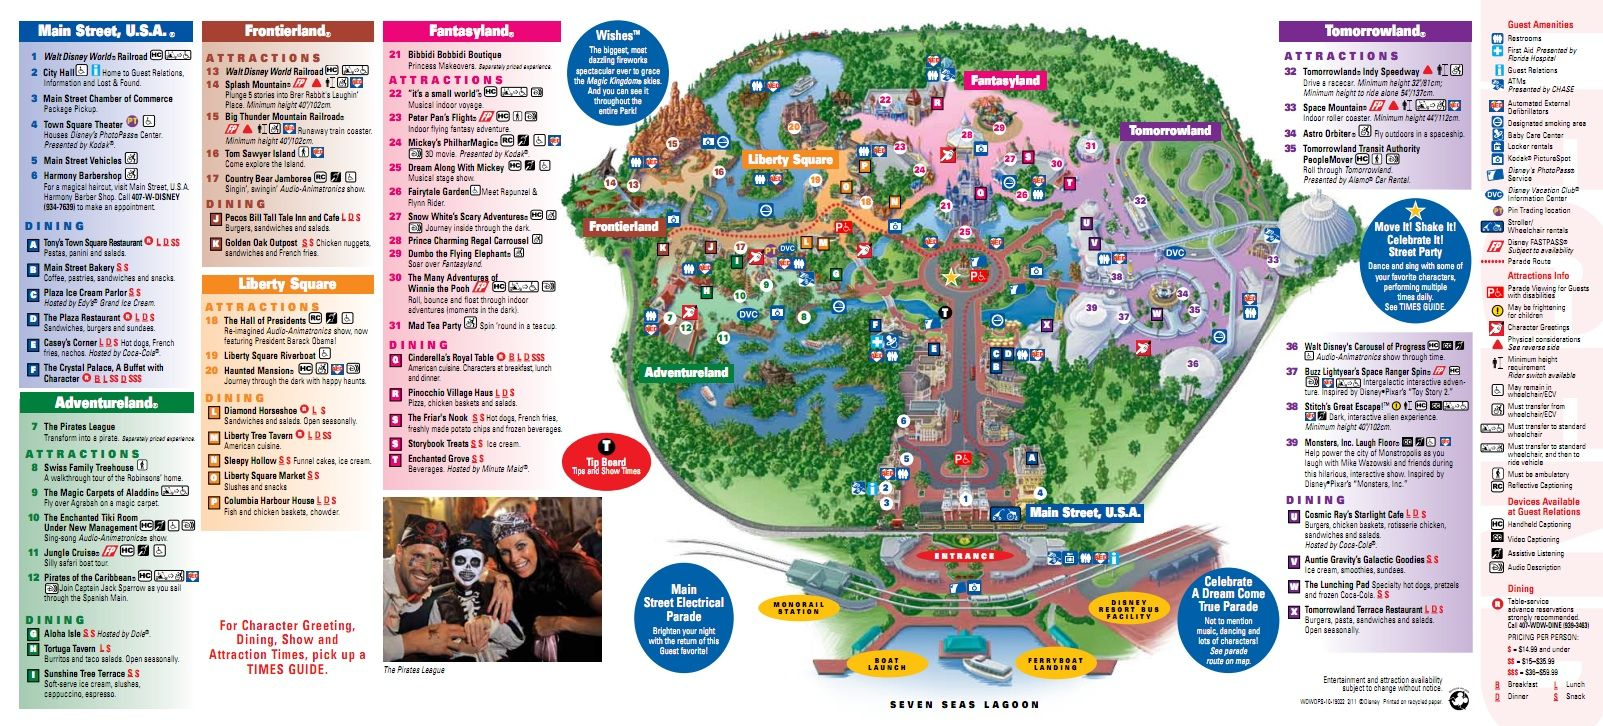 Magic Kingdom Map View A Free Printable Pdf Disney World Map View The Main  Attractions At